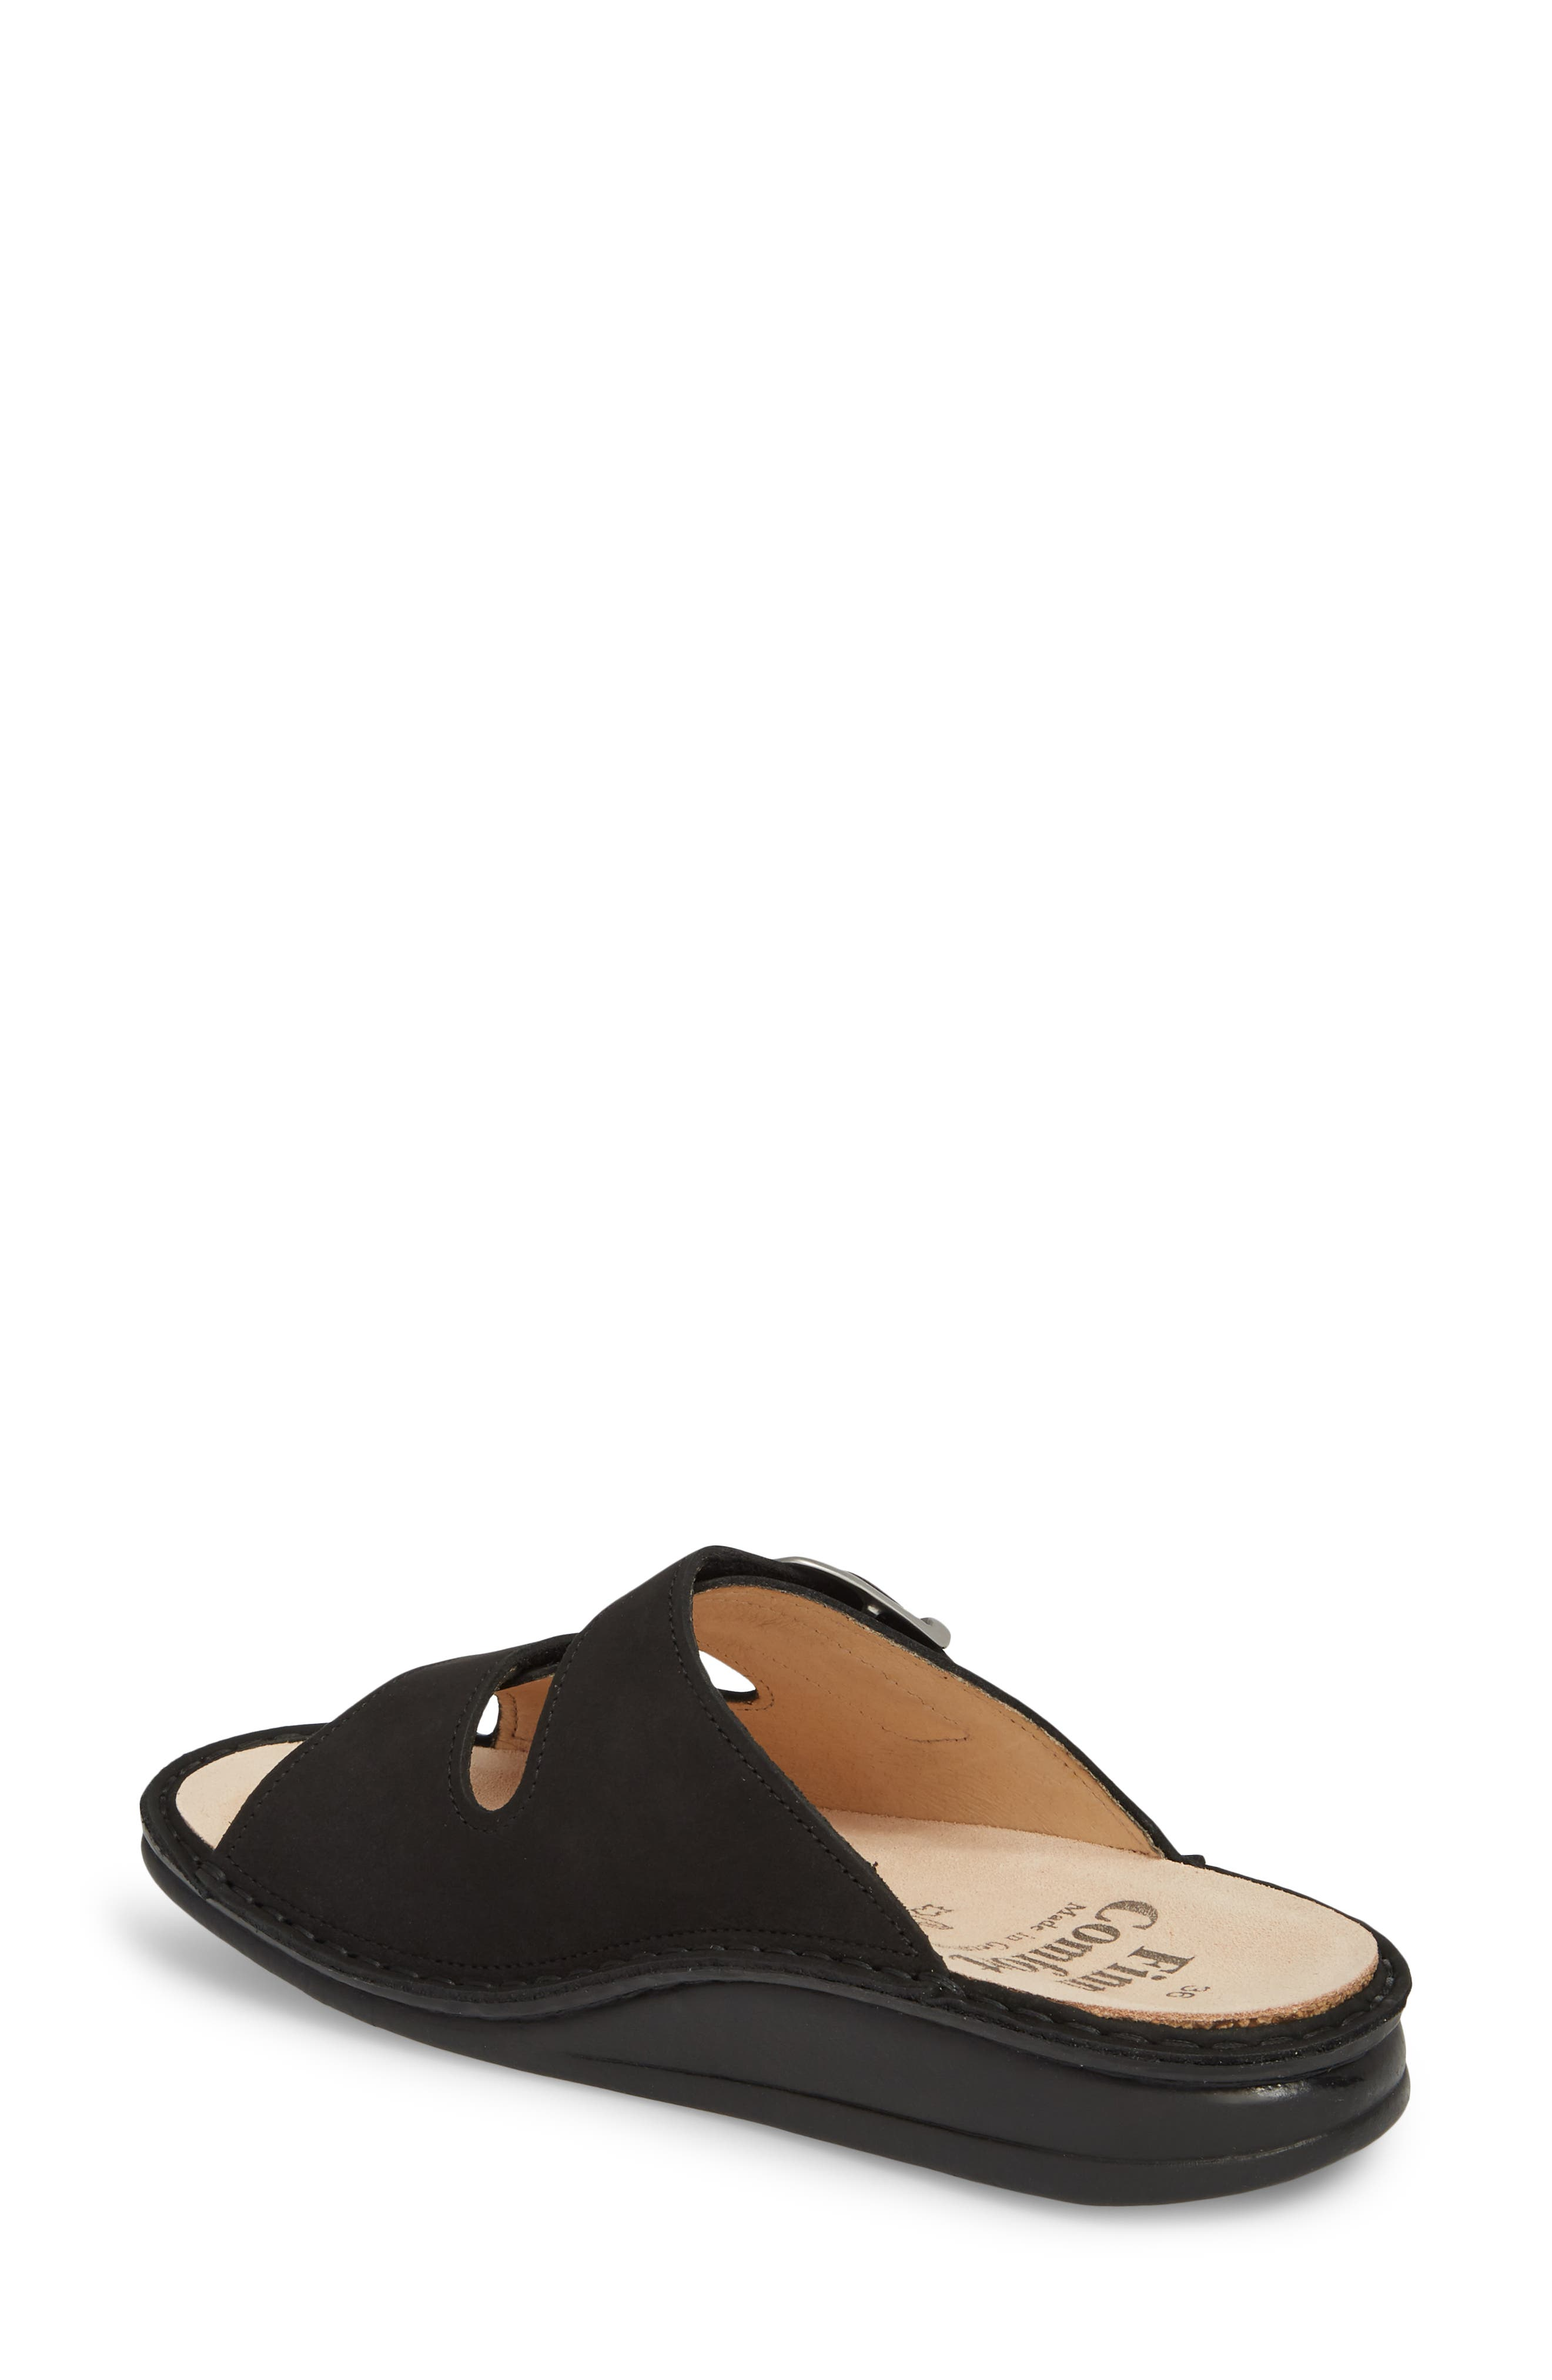 Harper Slide Sandal,                             Alternate thumbnail 2, color,                             BLACK LEATHER